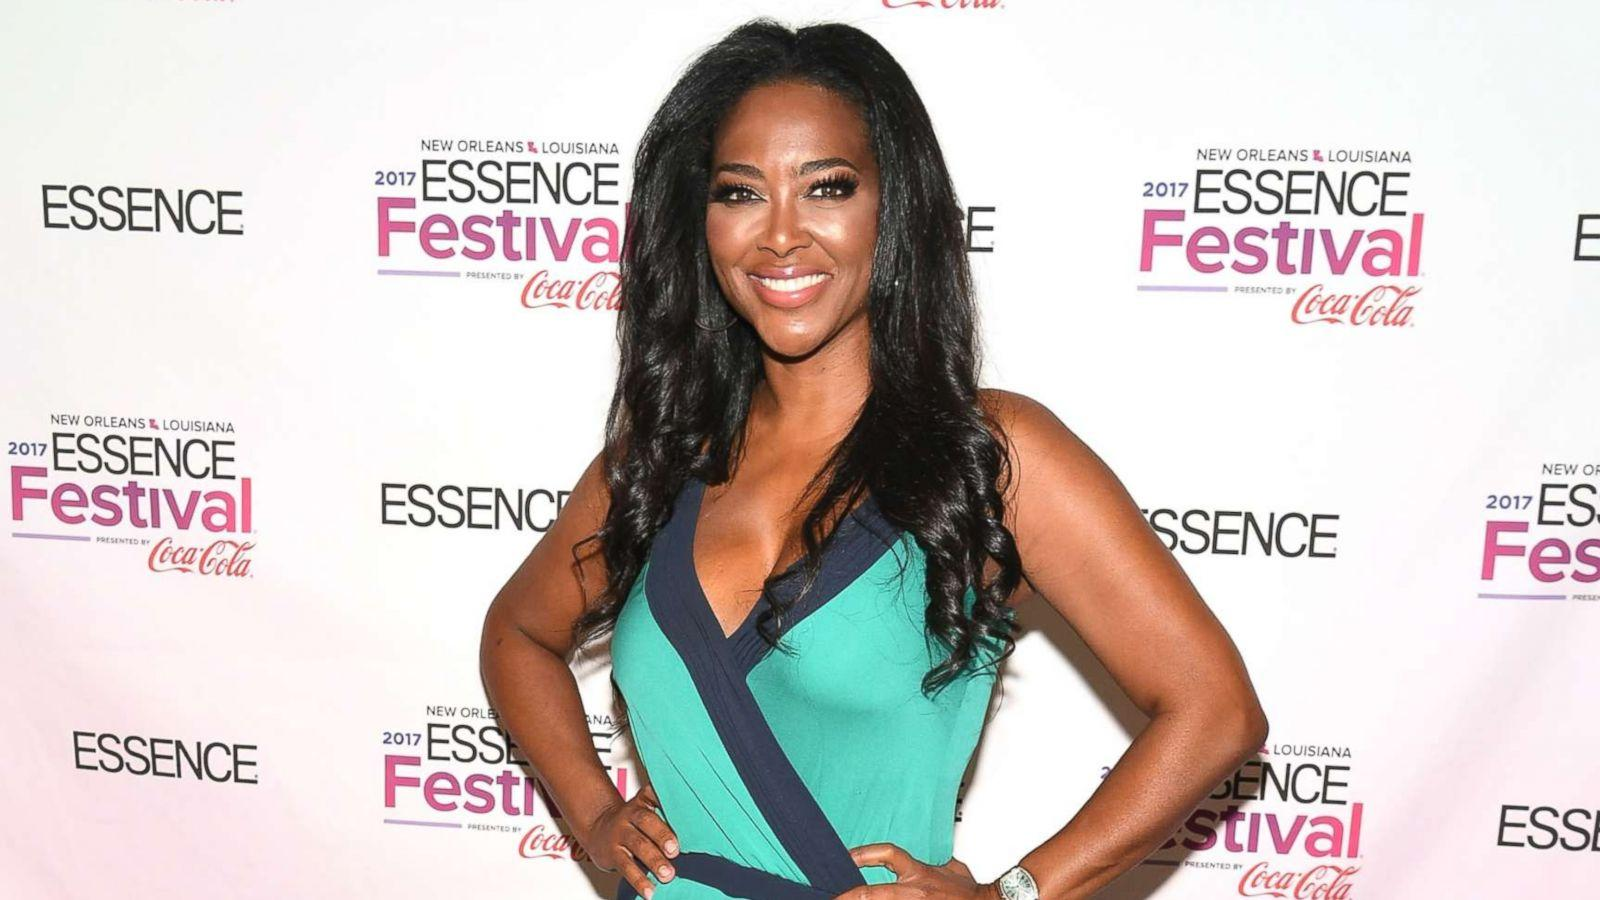 Kenya Moore Shares The Dolly Parton Challenge And Fans Say She Deserves A New King